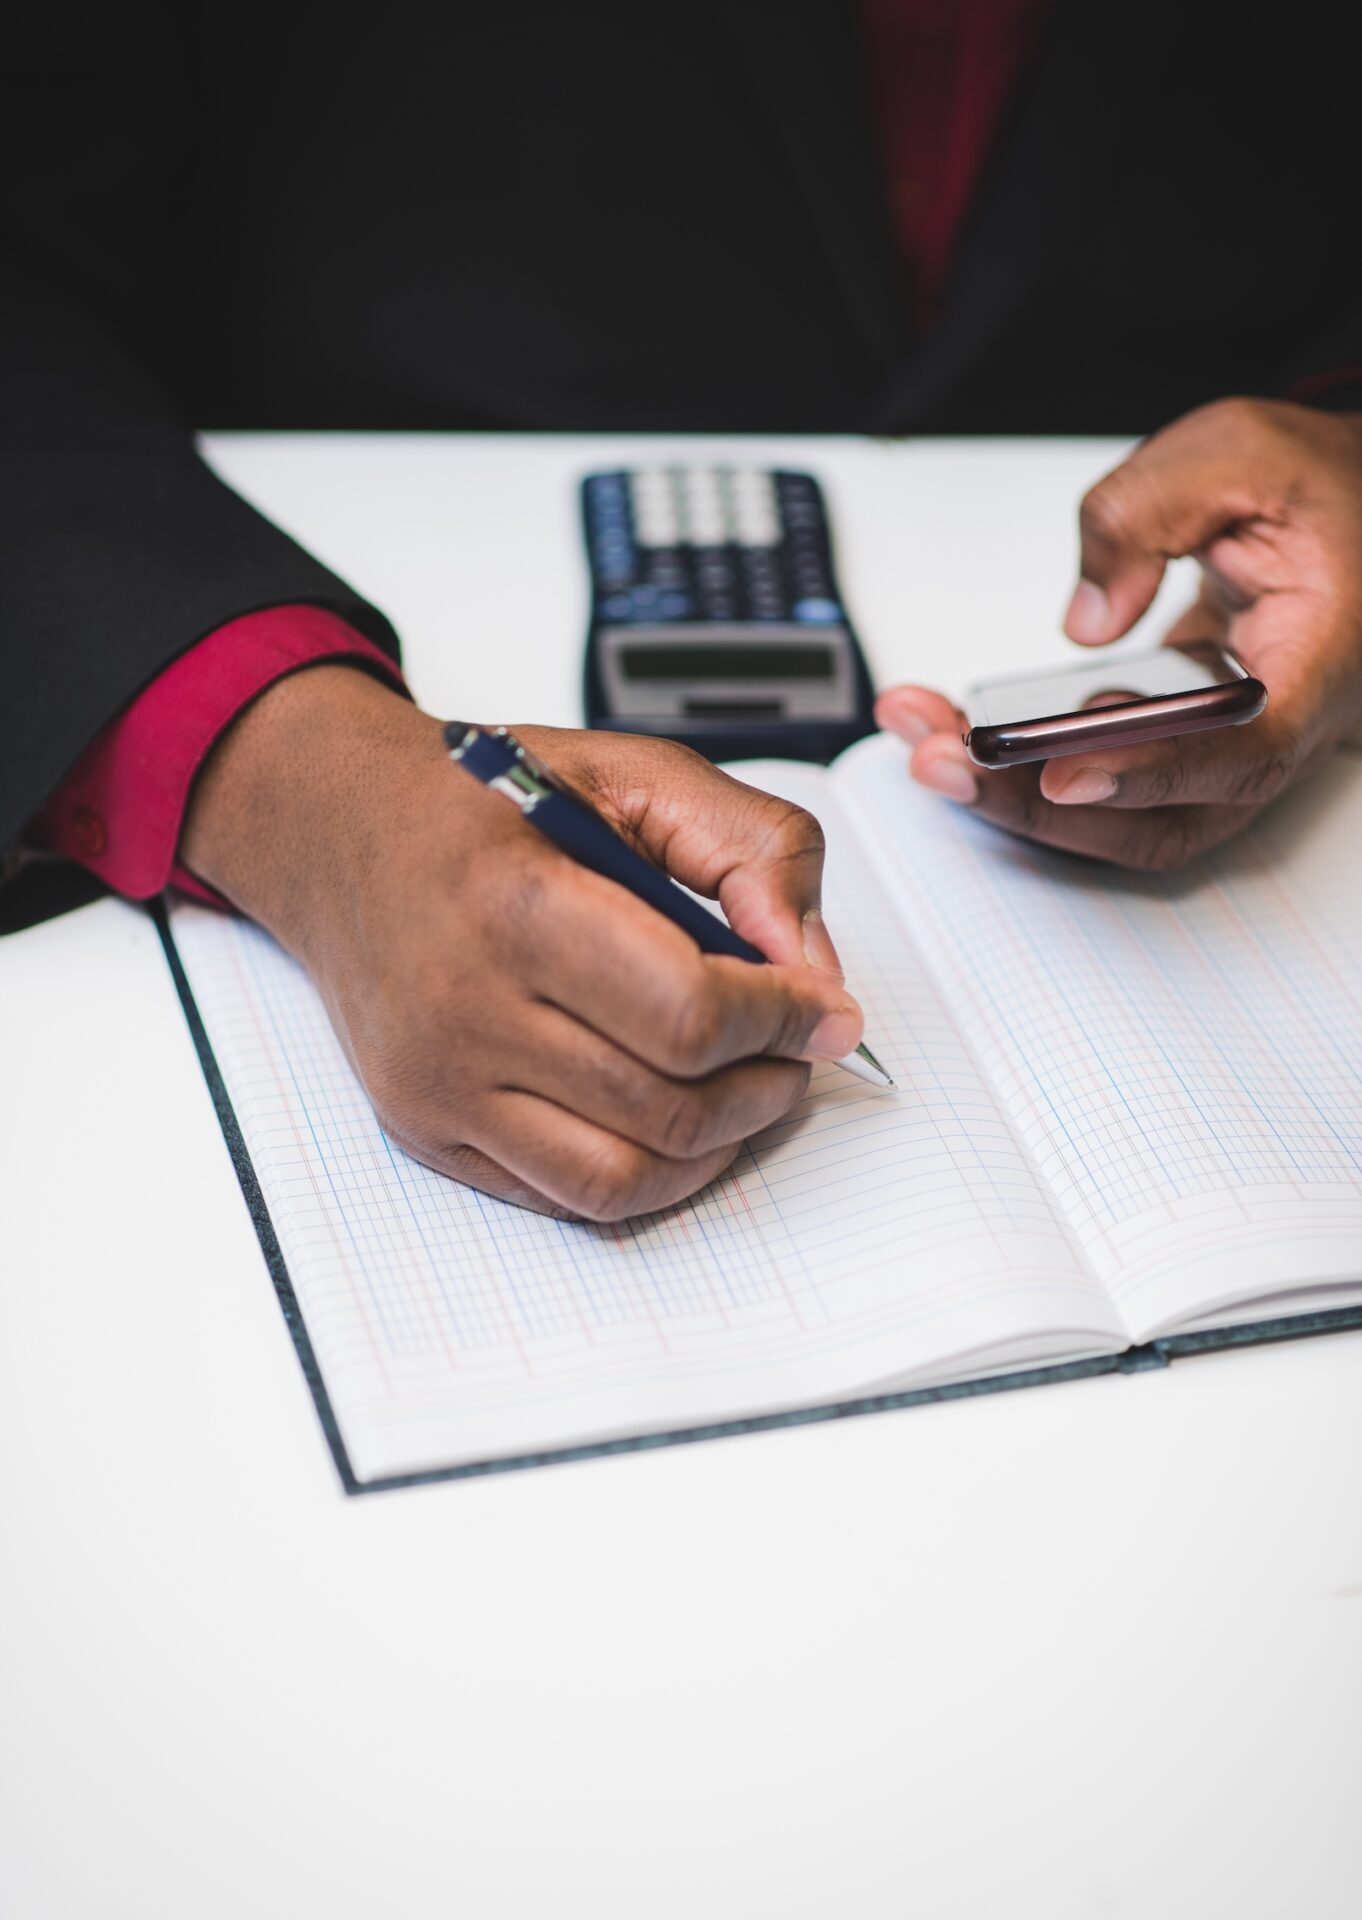 african-american-man-doing-accounting-with-smartph-WBLEZUP